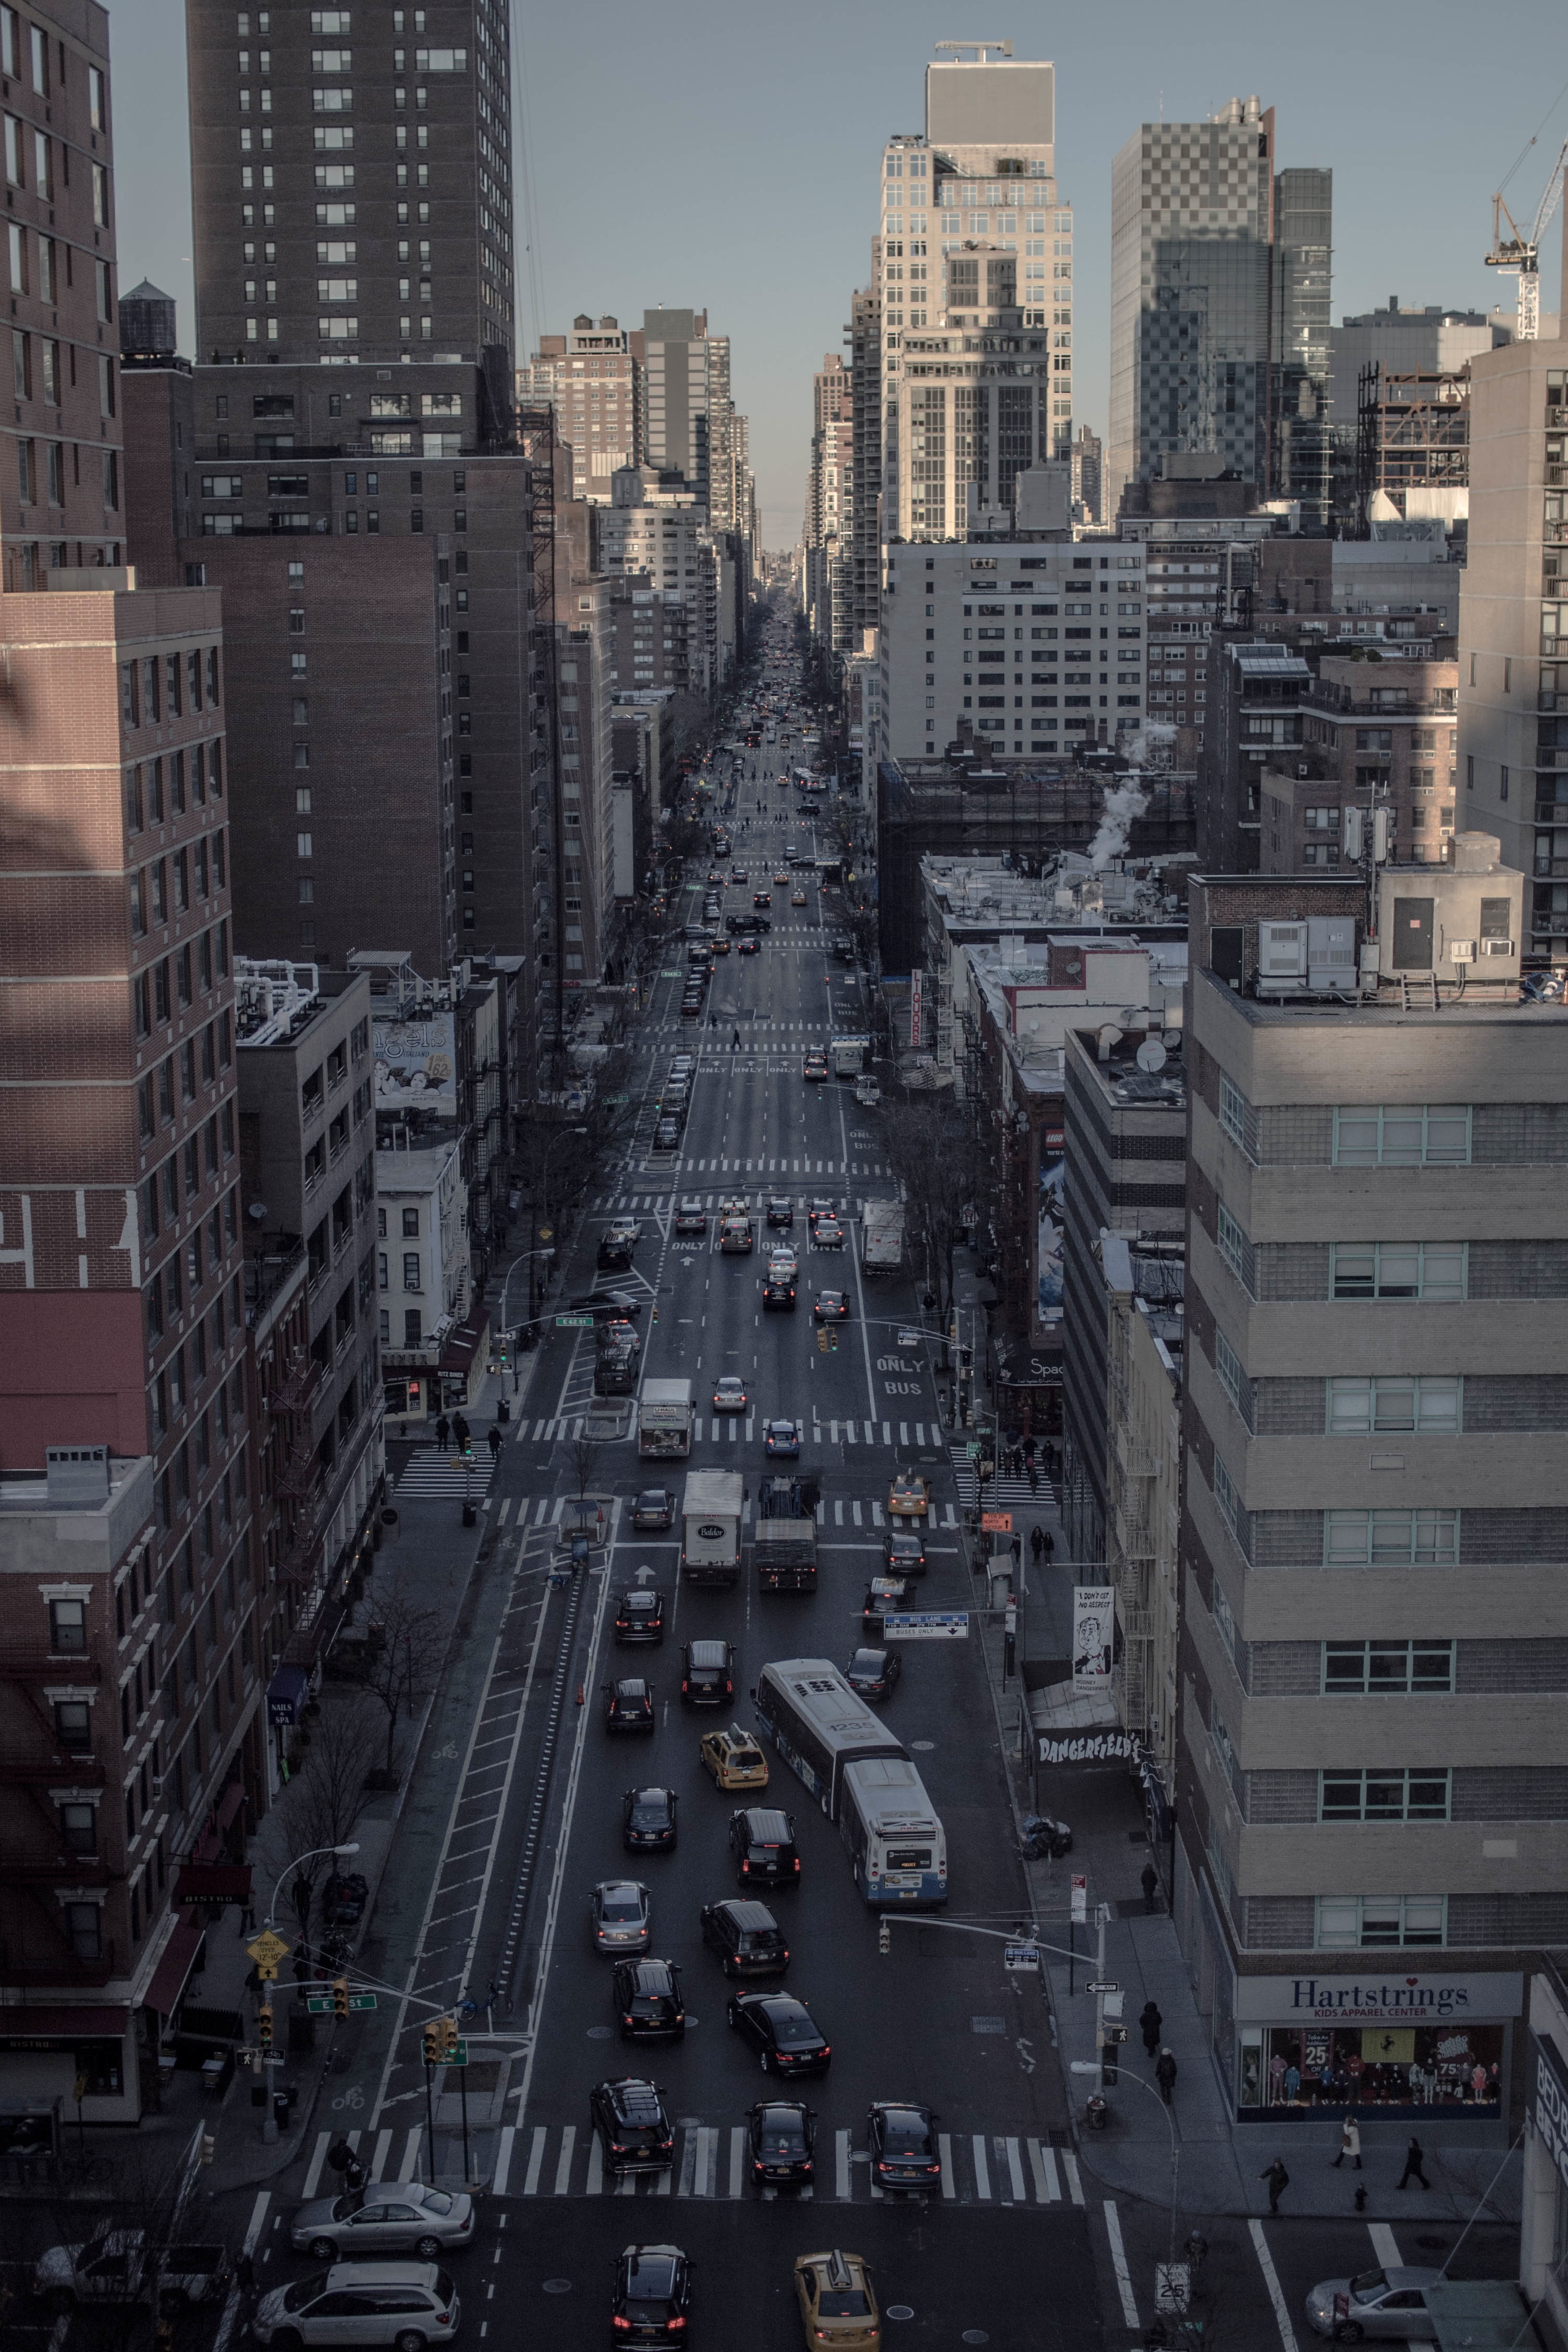 Busy Road, Building, Busy, City, Concrete, HQ Photo